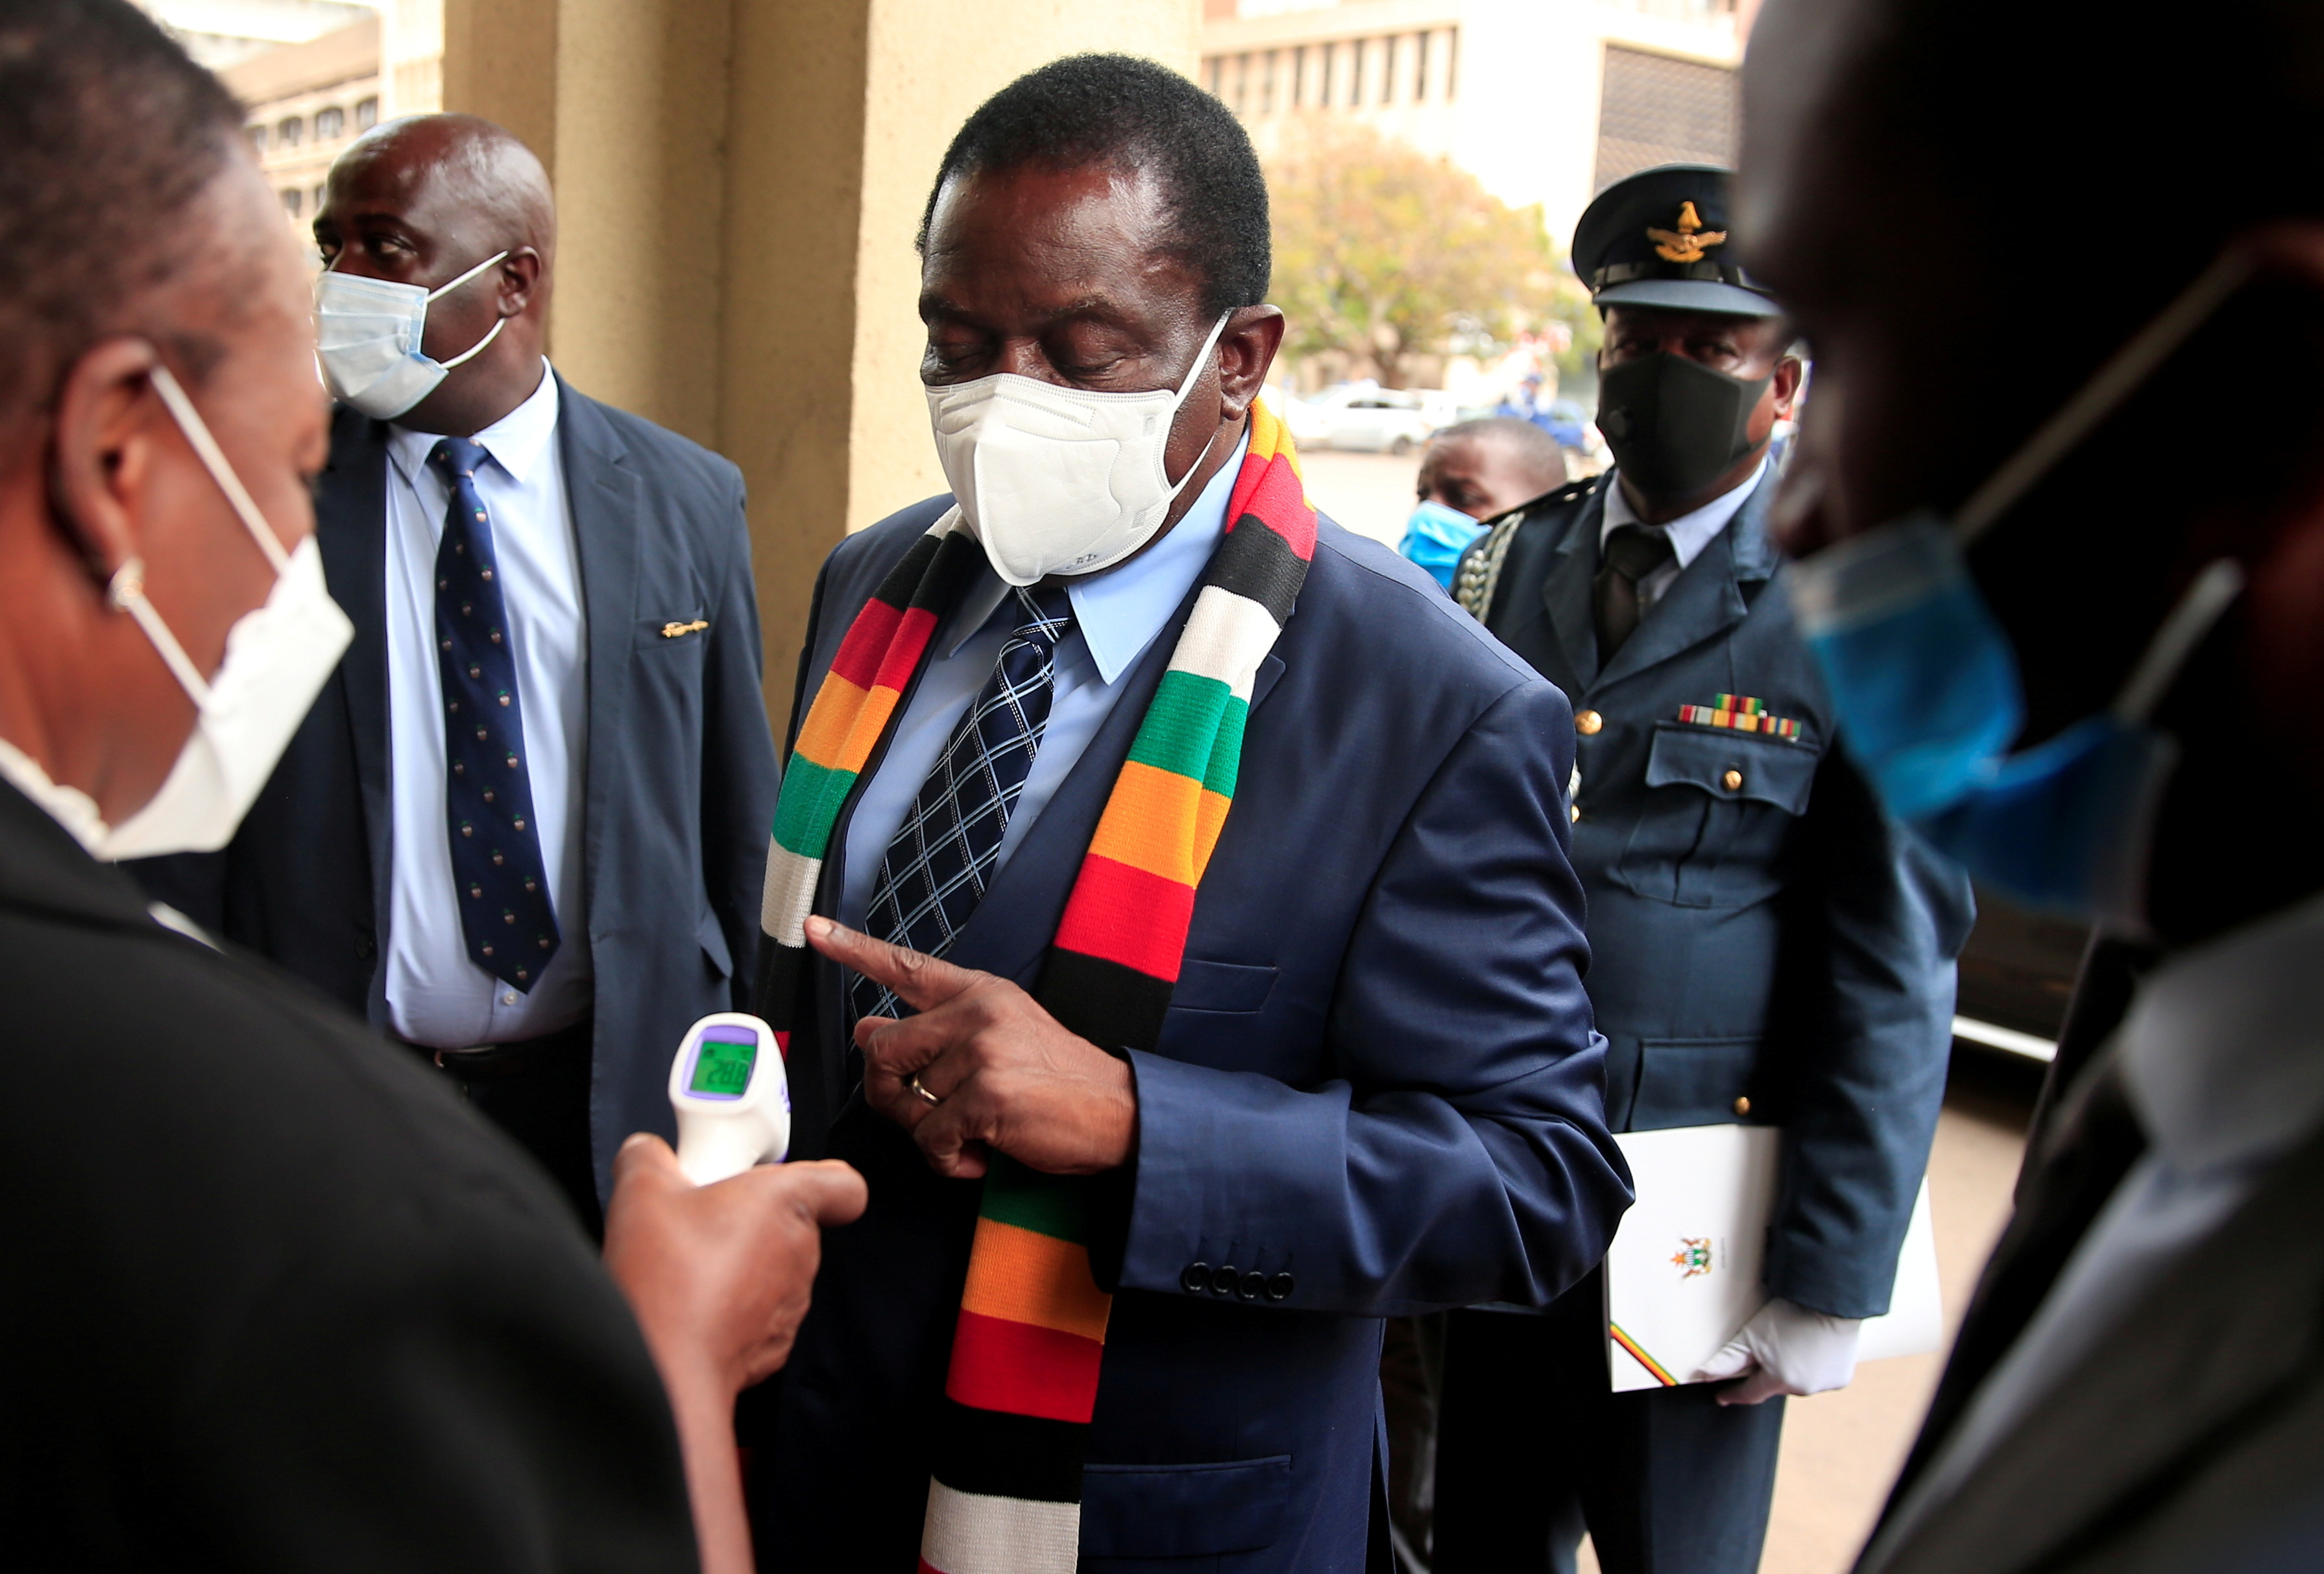 Zimbabwean President Emmerson Mnangagwa has his temperature taken as he arrives for the presentation of the 2021 National Budget at the parliament in Harare, Zimbabwe, November 26, 2020. REUTERS/Philimon Bulawayo/File Photo